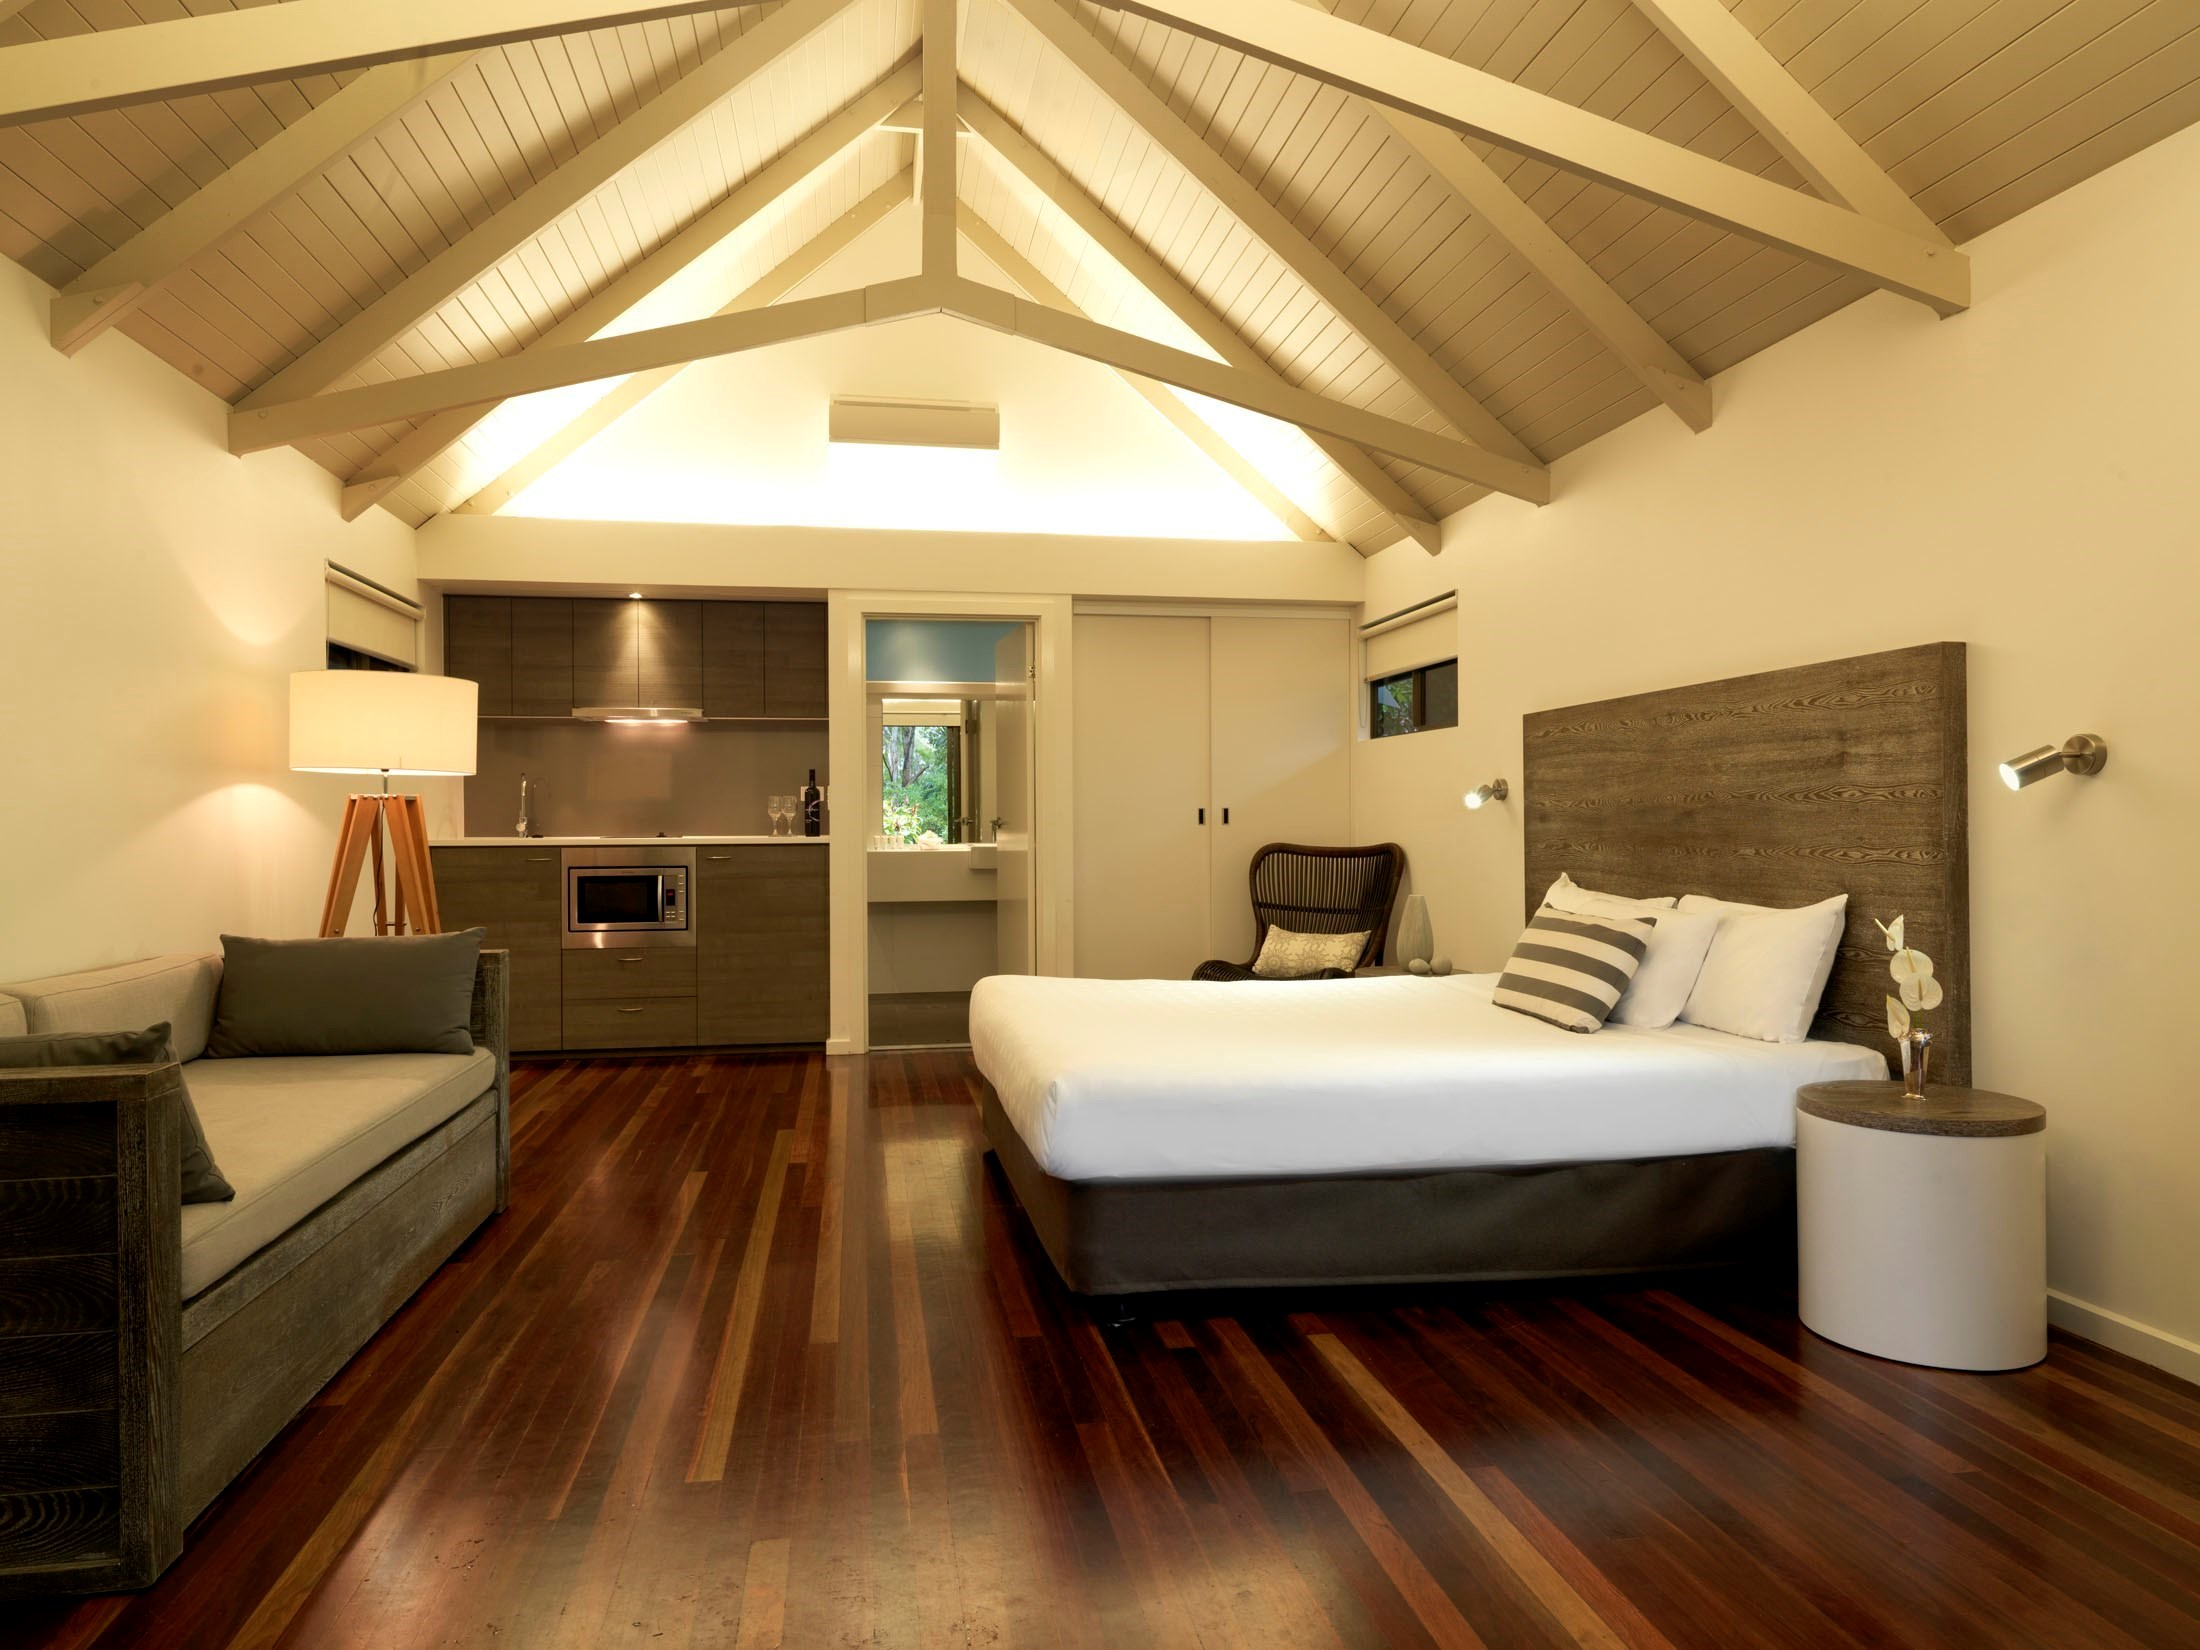 Superior Palm Bungalow Part - 2: Ideal For Couples Or Small Families Palm Bungalows